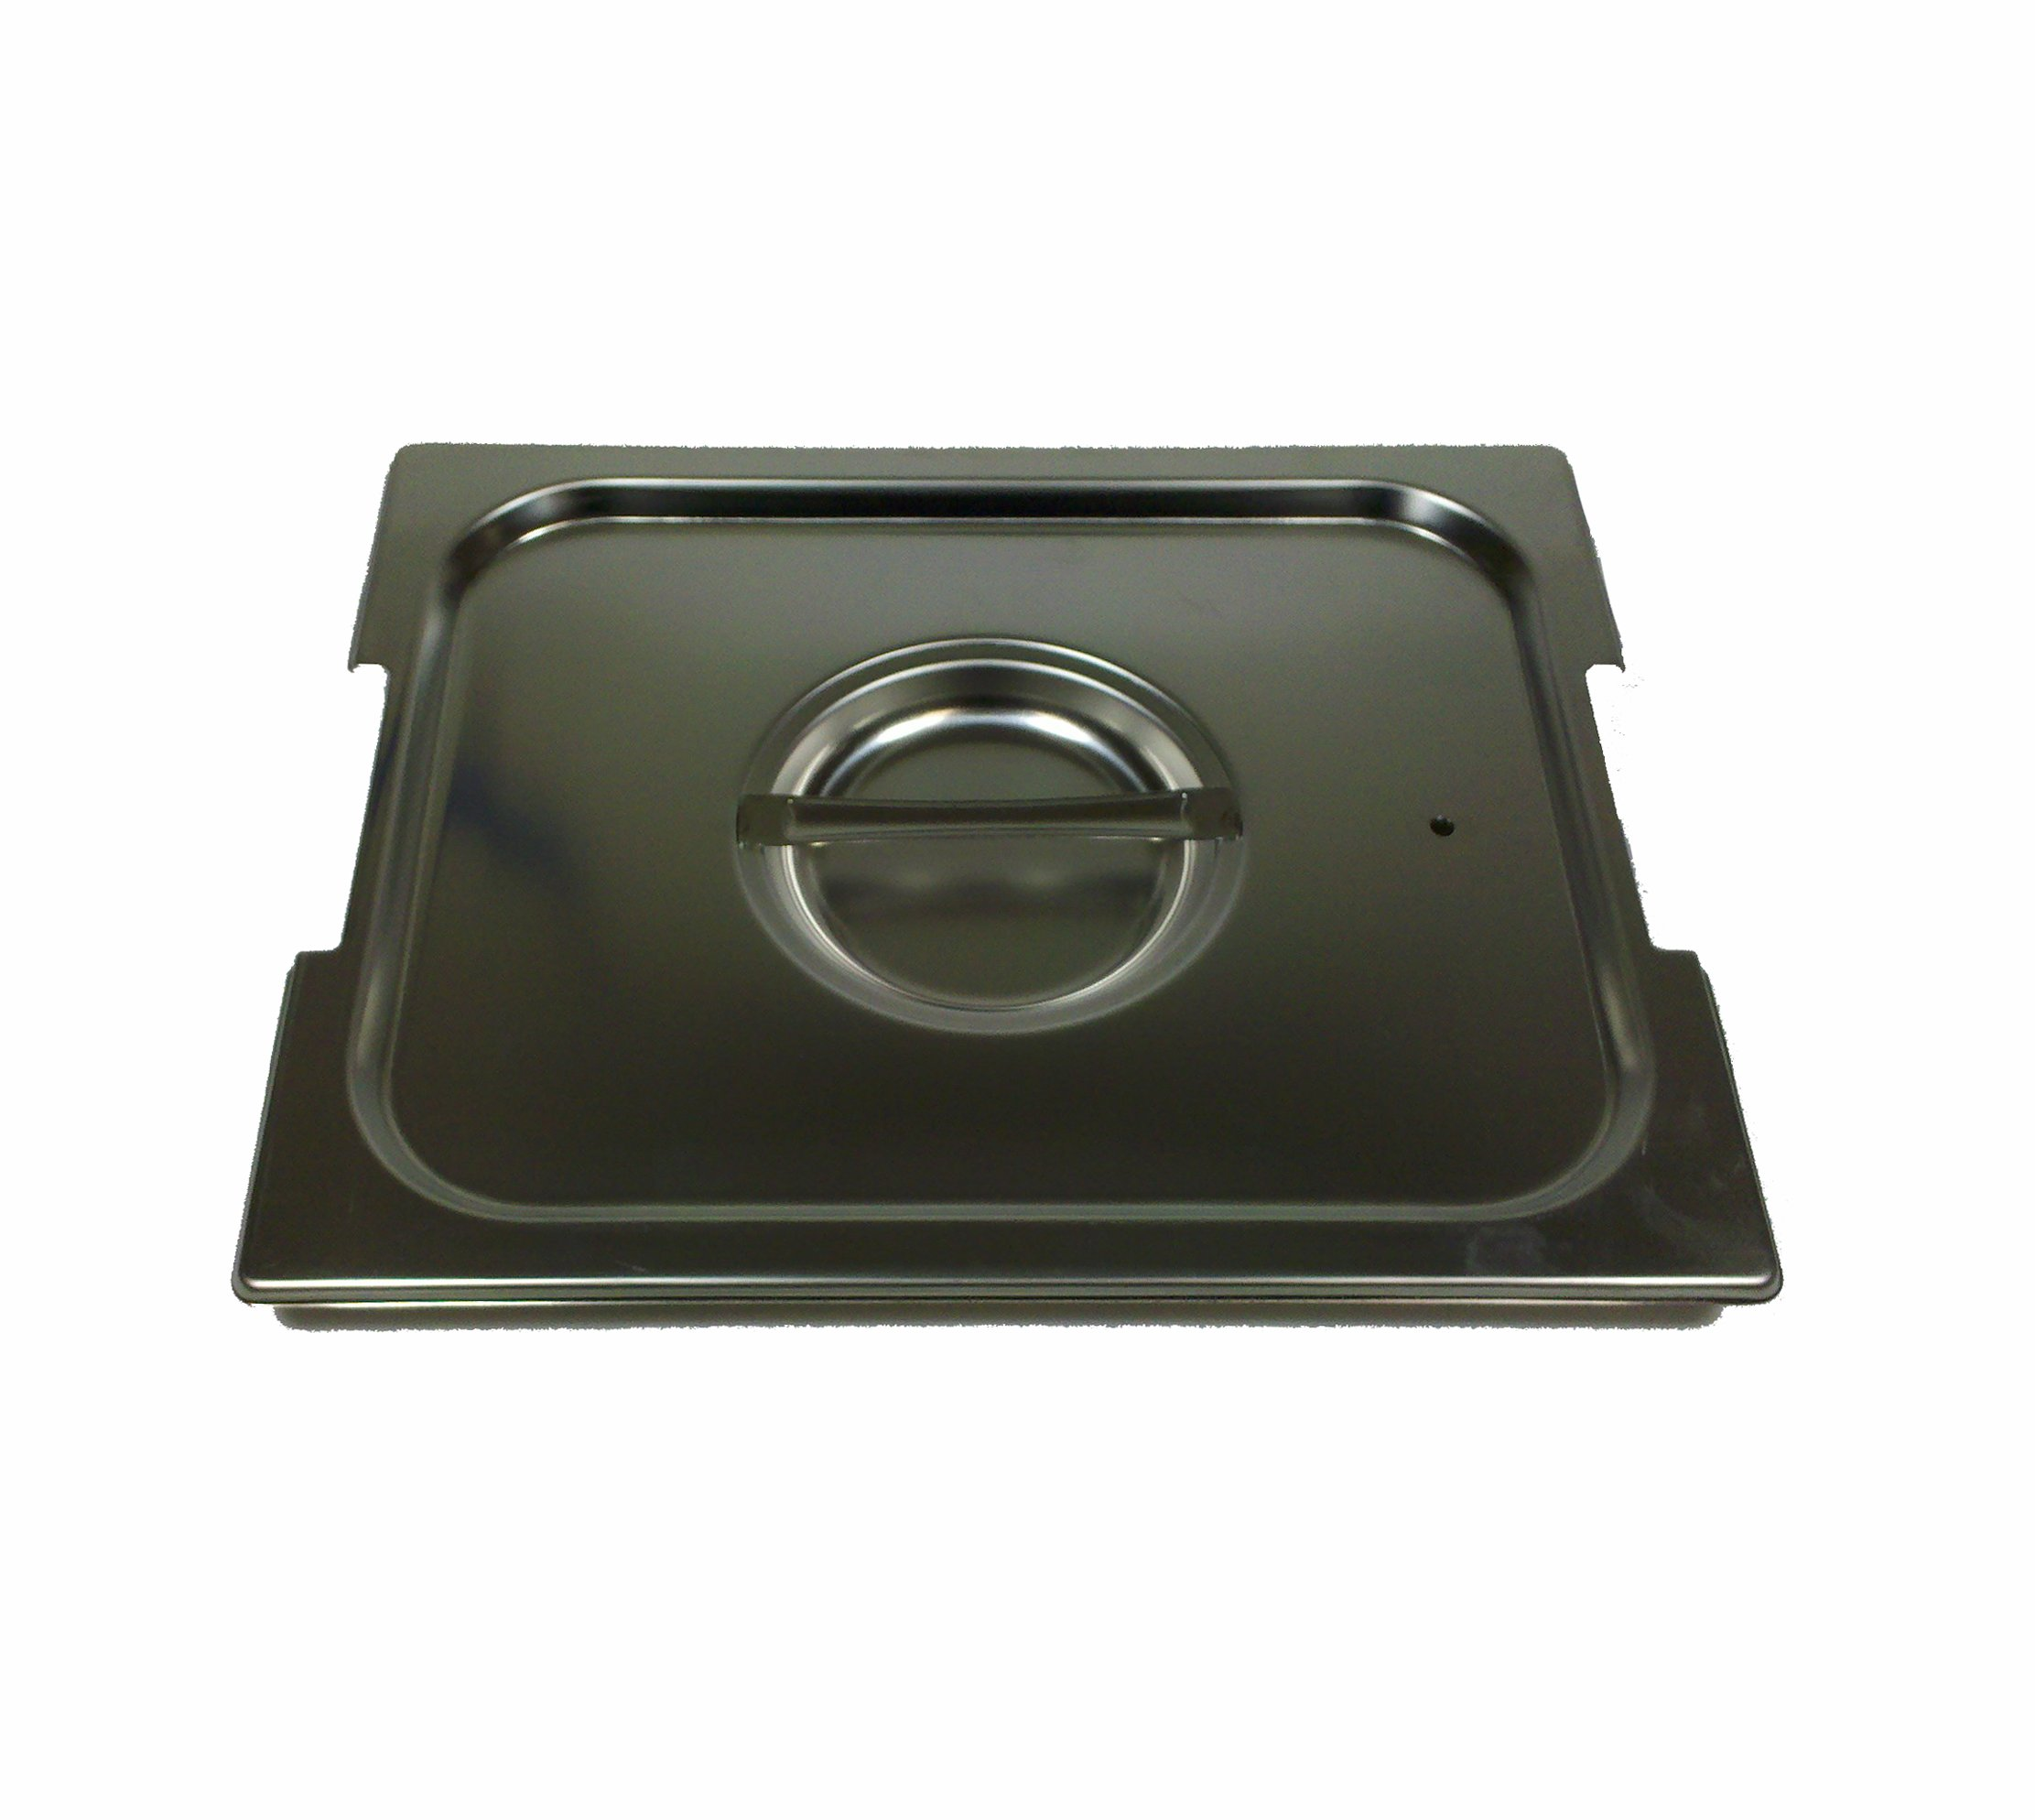 Paderno World Cuisine 20 7/8 inches by 12 3/4 inches Stainless-steel Handled Lid for Hotel Pan - 1/1